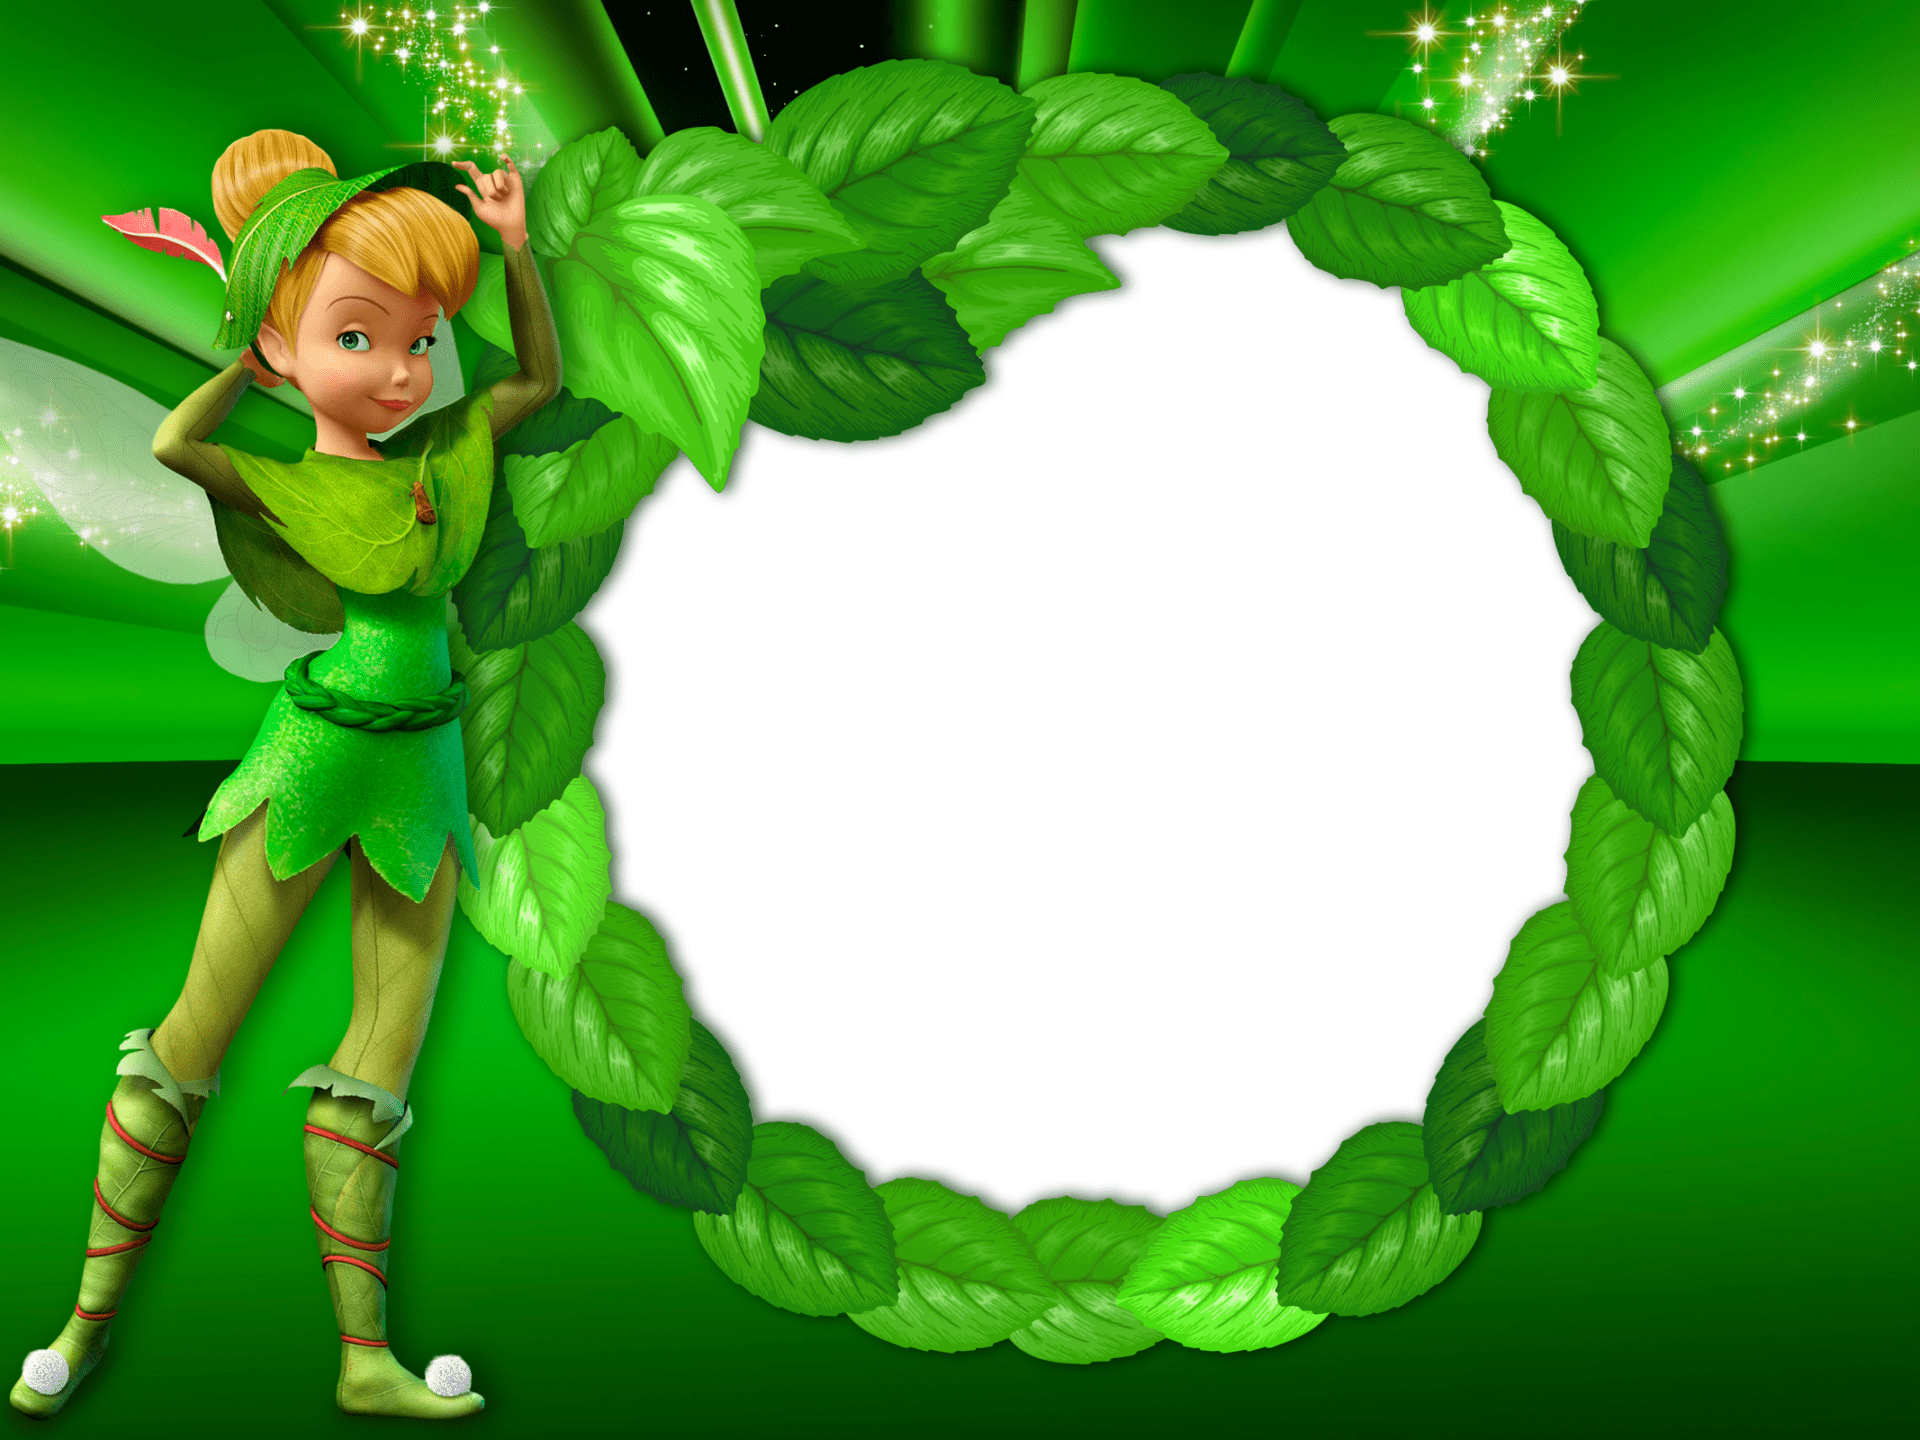 How To Use A Gif As A Wallpaper Iphone Green Transparent Kids Frame With Tinkerbell Fairy